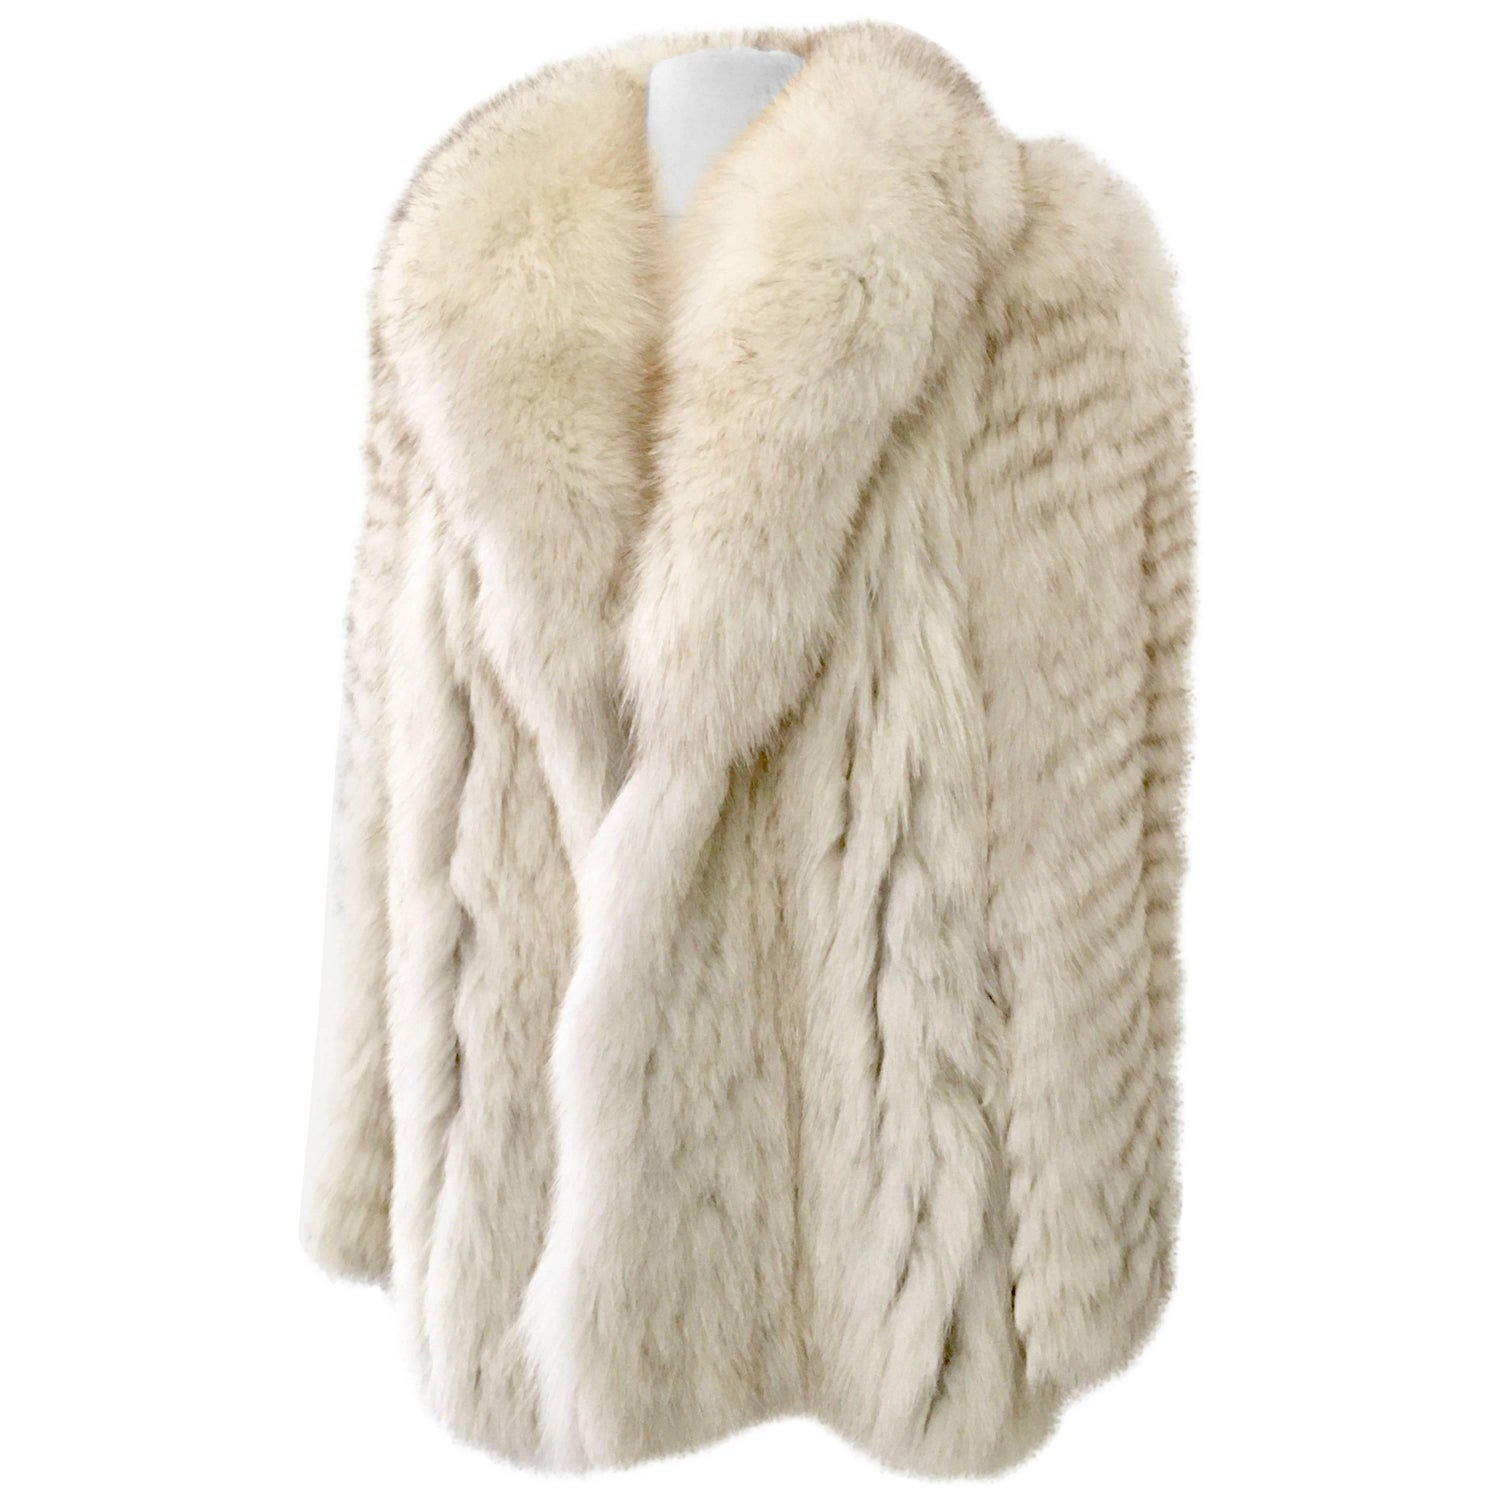 Vintage and Fine White Fur Coats - 88 For Sale on 1stdibs